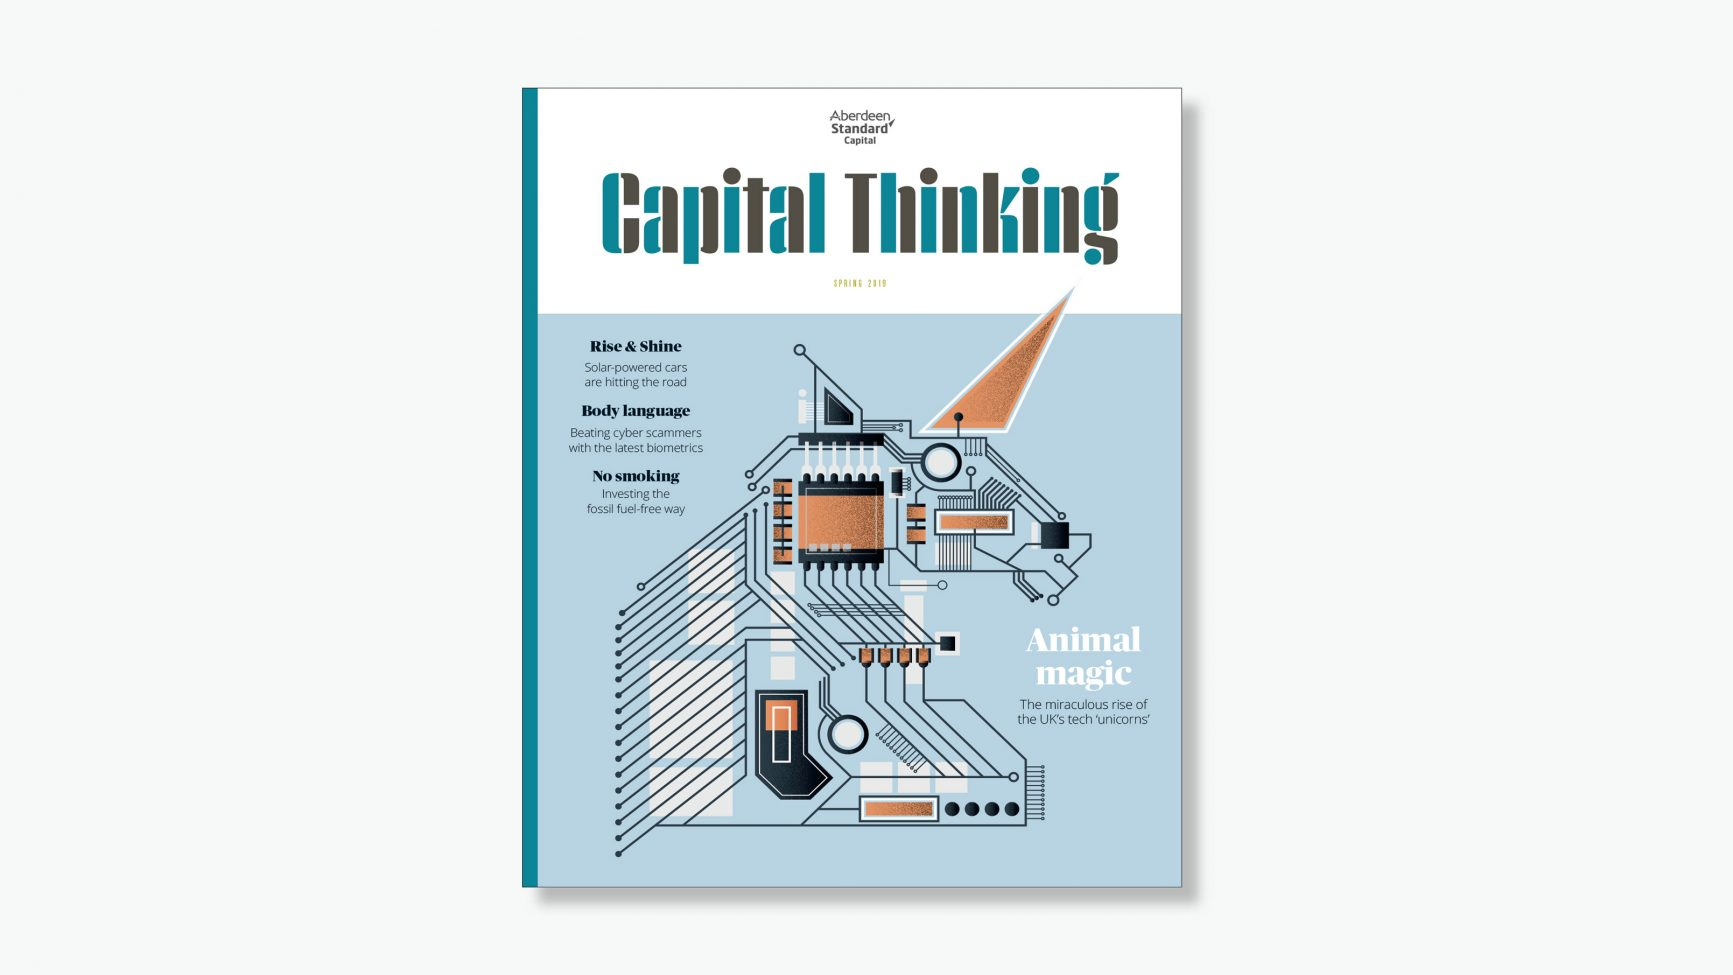 tech unicorns capital thinking magazine financial content jack bedford